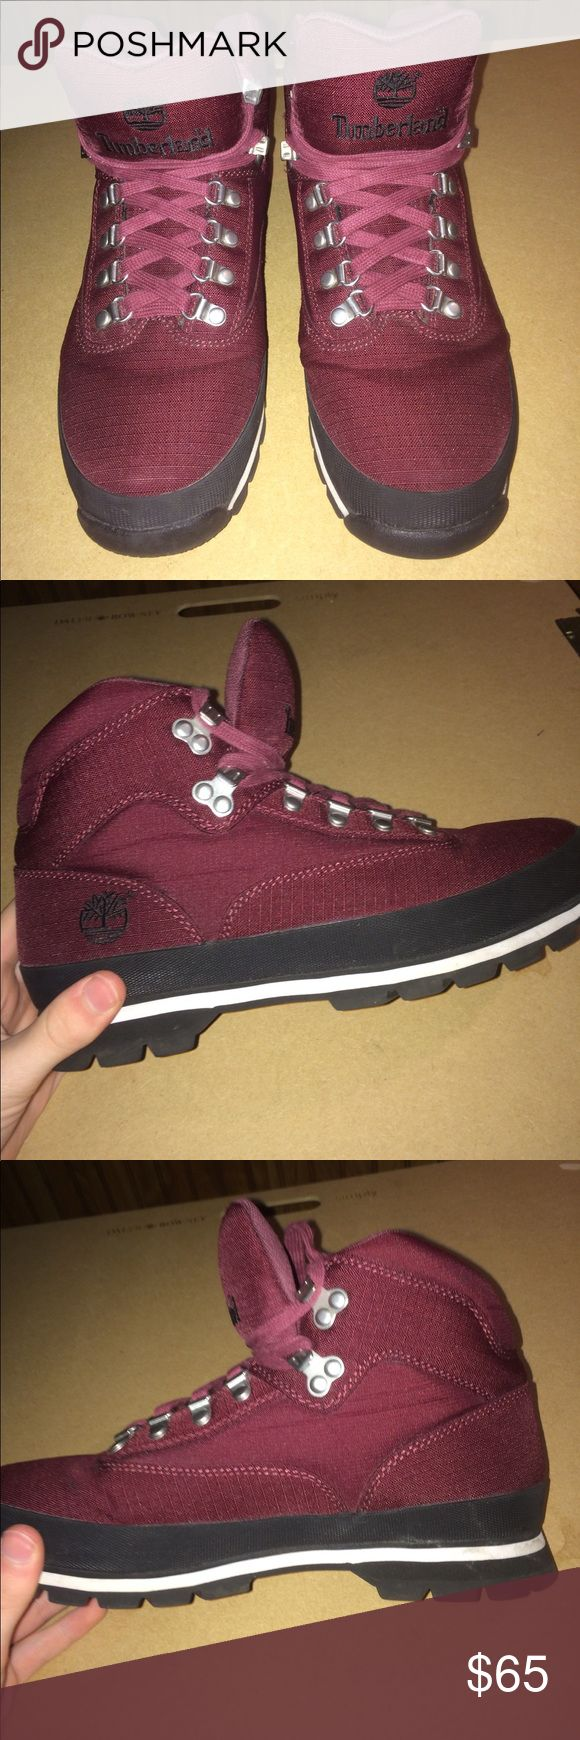 Men's Timberland EuroHiker Maroon (Size 9) very comfortable, very lightly worn, Timberland EuroHiker boots for sale. Fits like 9.5 (runs large). Box not included. Timberland Shoes Lace Up Boots